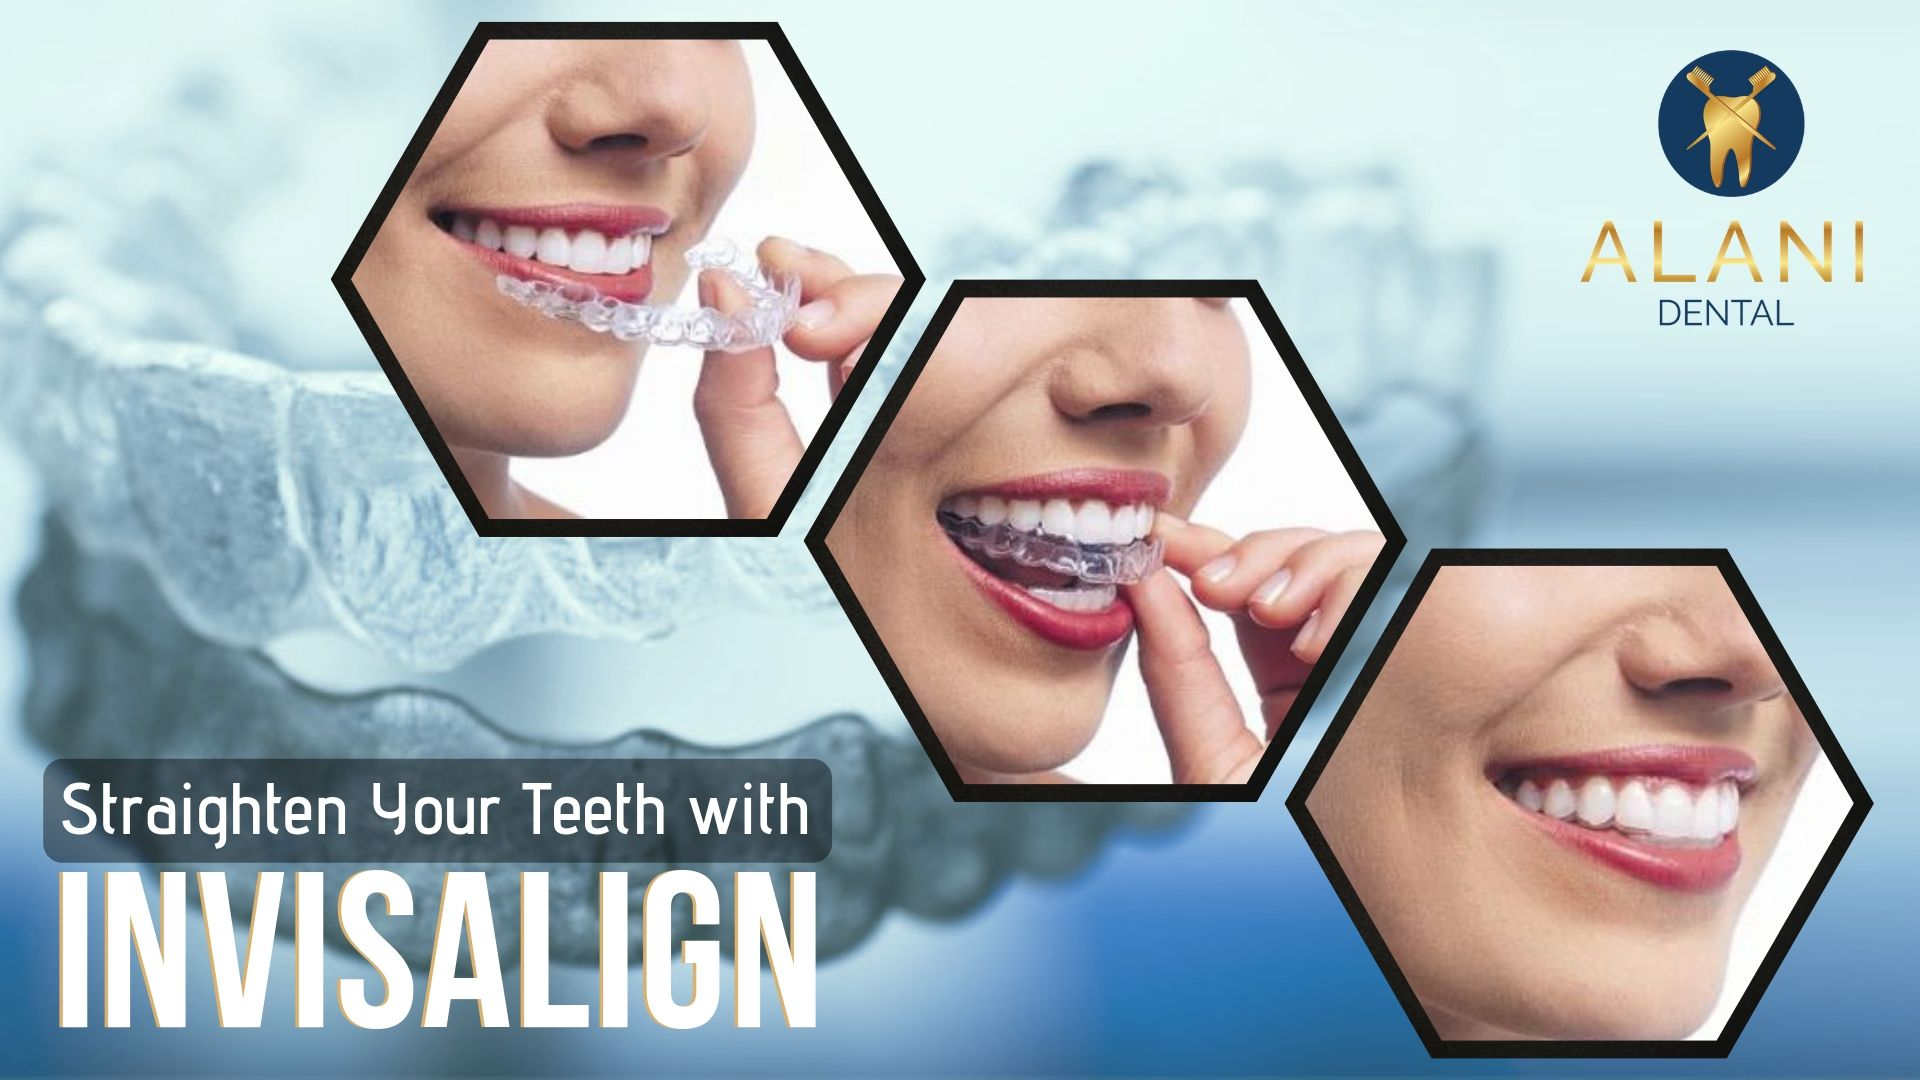 Invisalign jacksonville with images invisalign